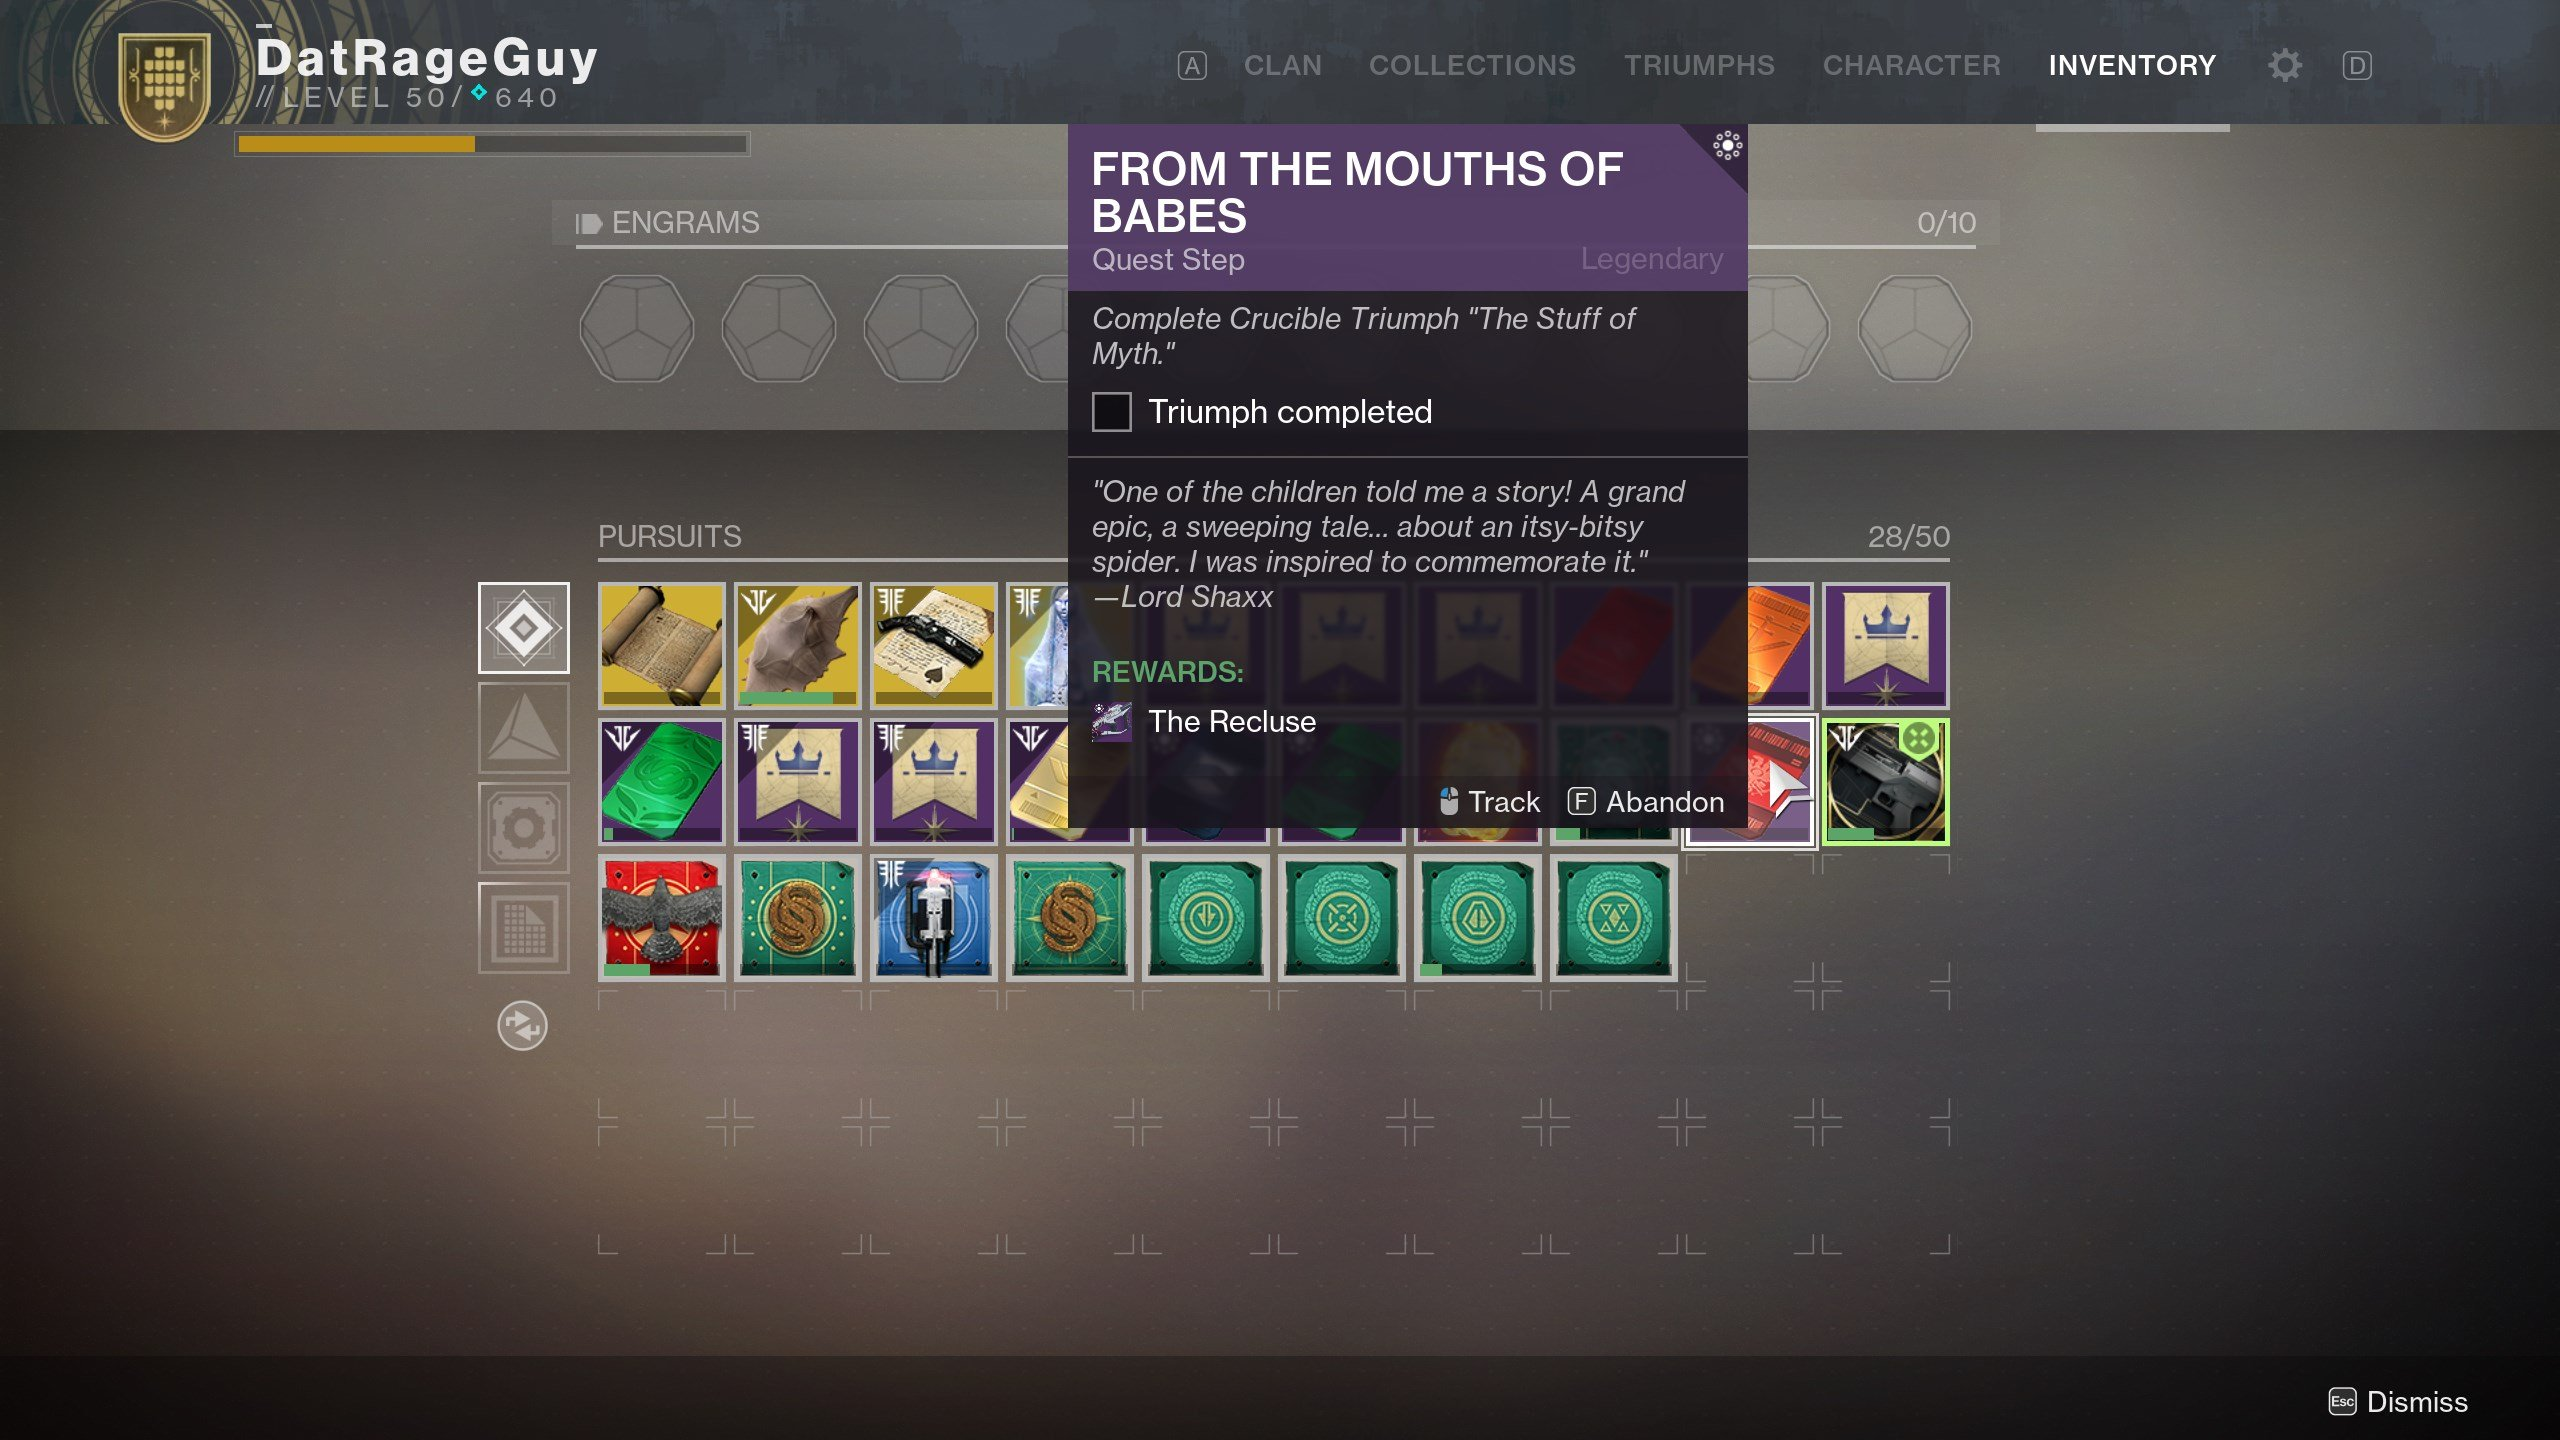 Destiny 2 From the Mouths of Babes quest